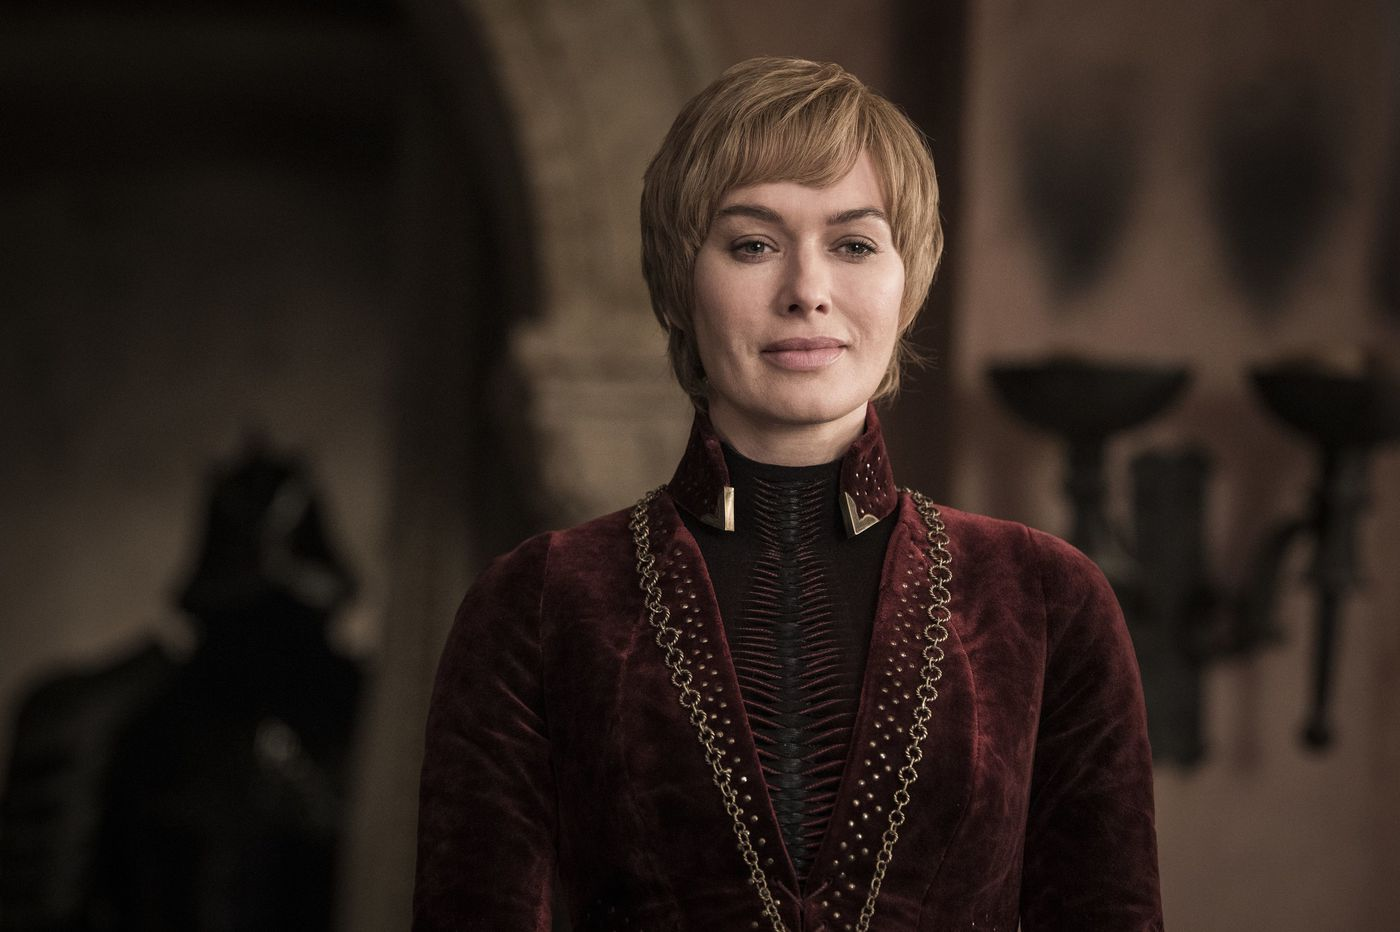 'Game of Thrones' review: Fire when ready